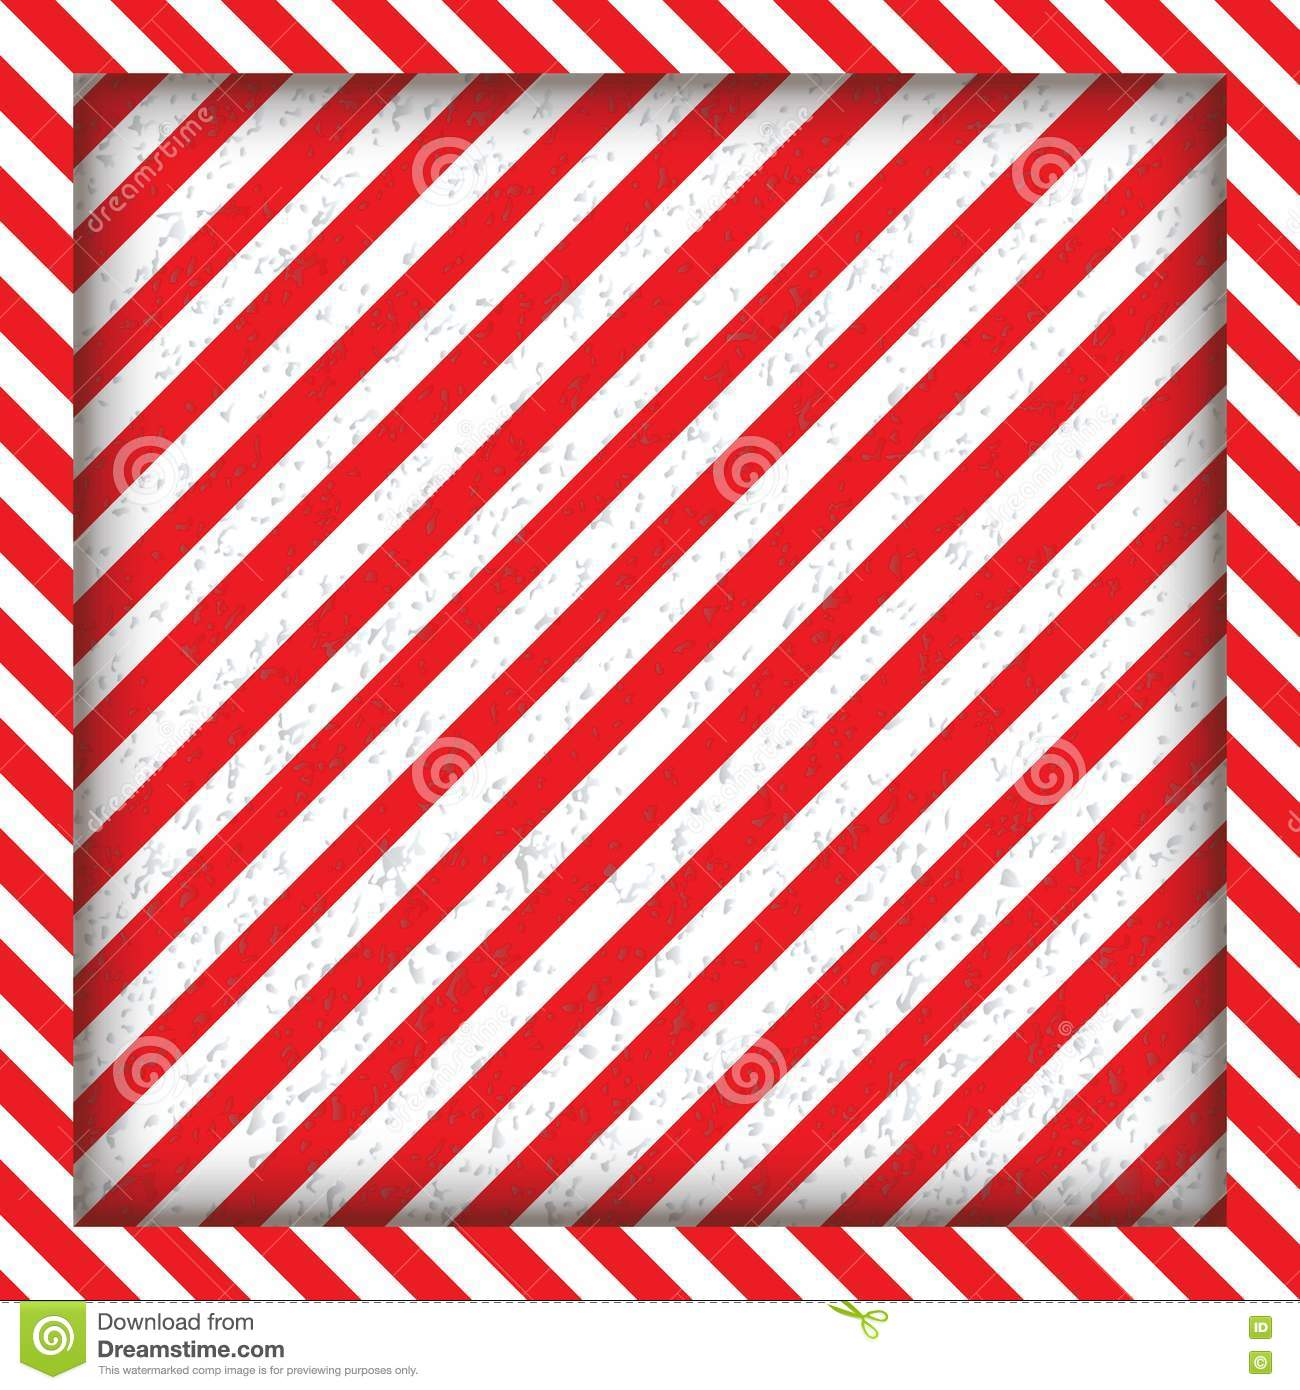 Abstract Geometric Lines With Diagonal Black And Red Stripes The